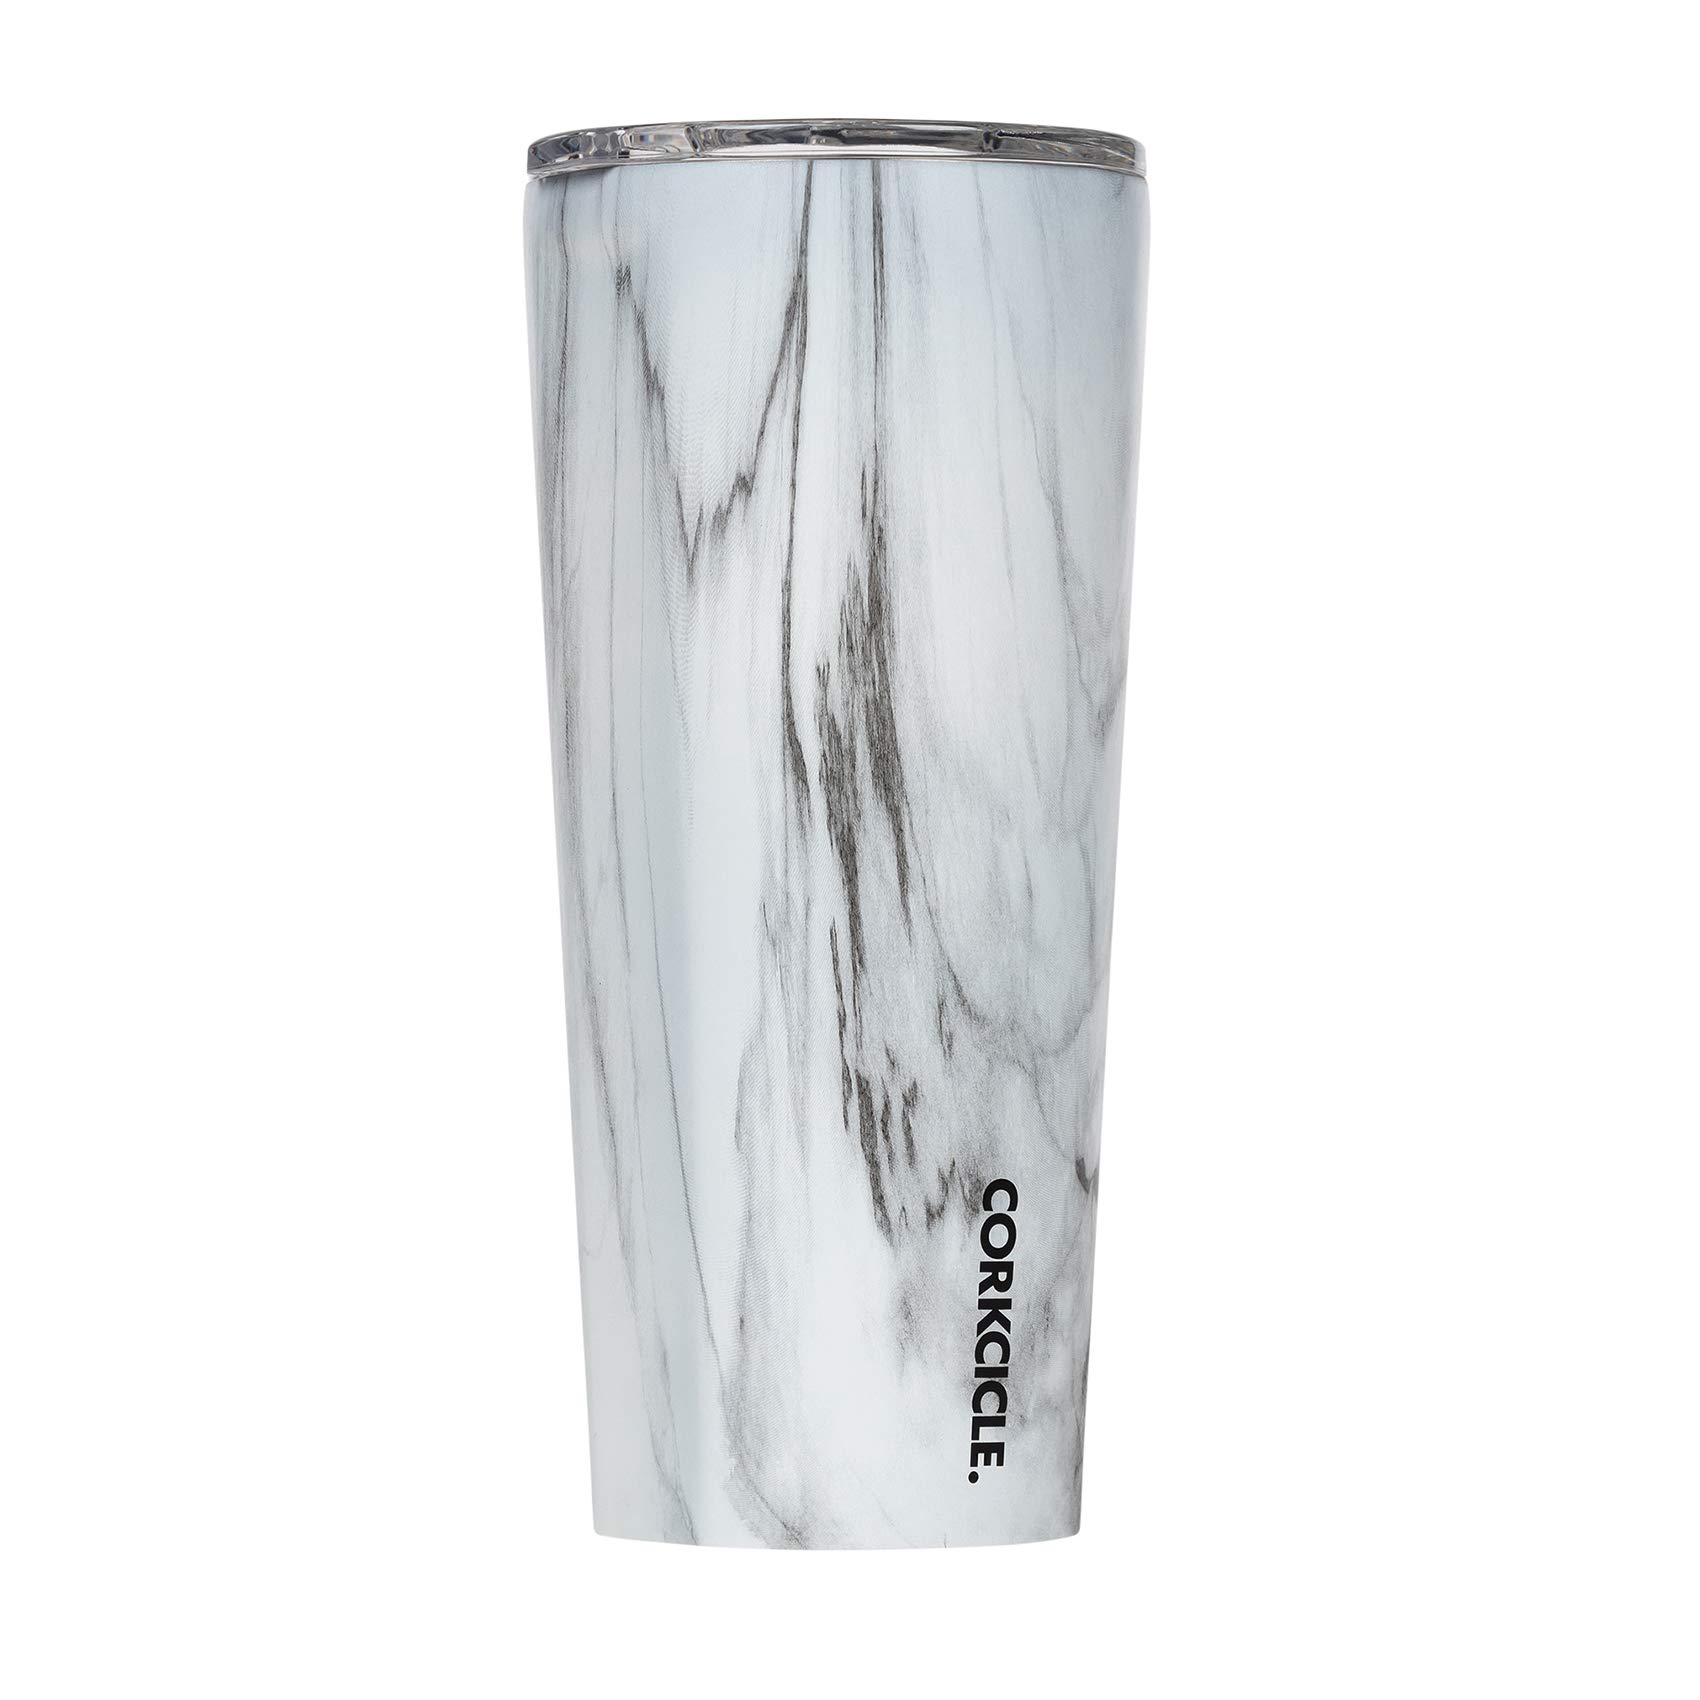 Corkcicle Tumbler - Origins Collection - Triple Insulated Stainless Steel Travel Mug, Wood Snowdrift, 24oz by Corkcicle